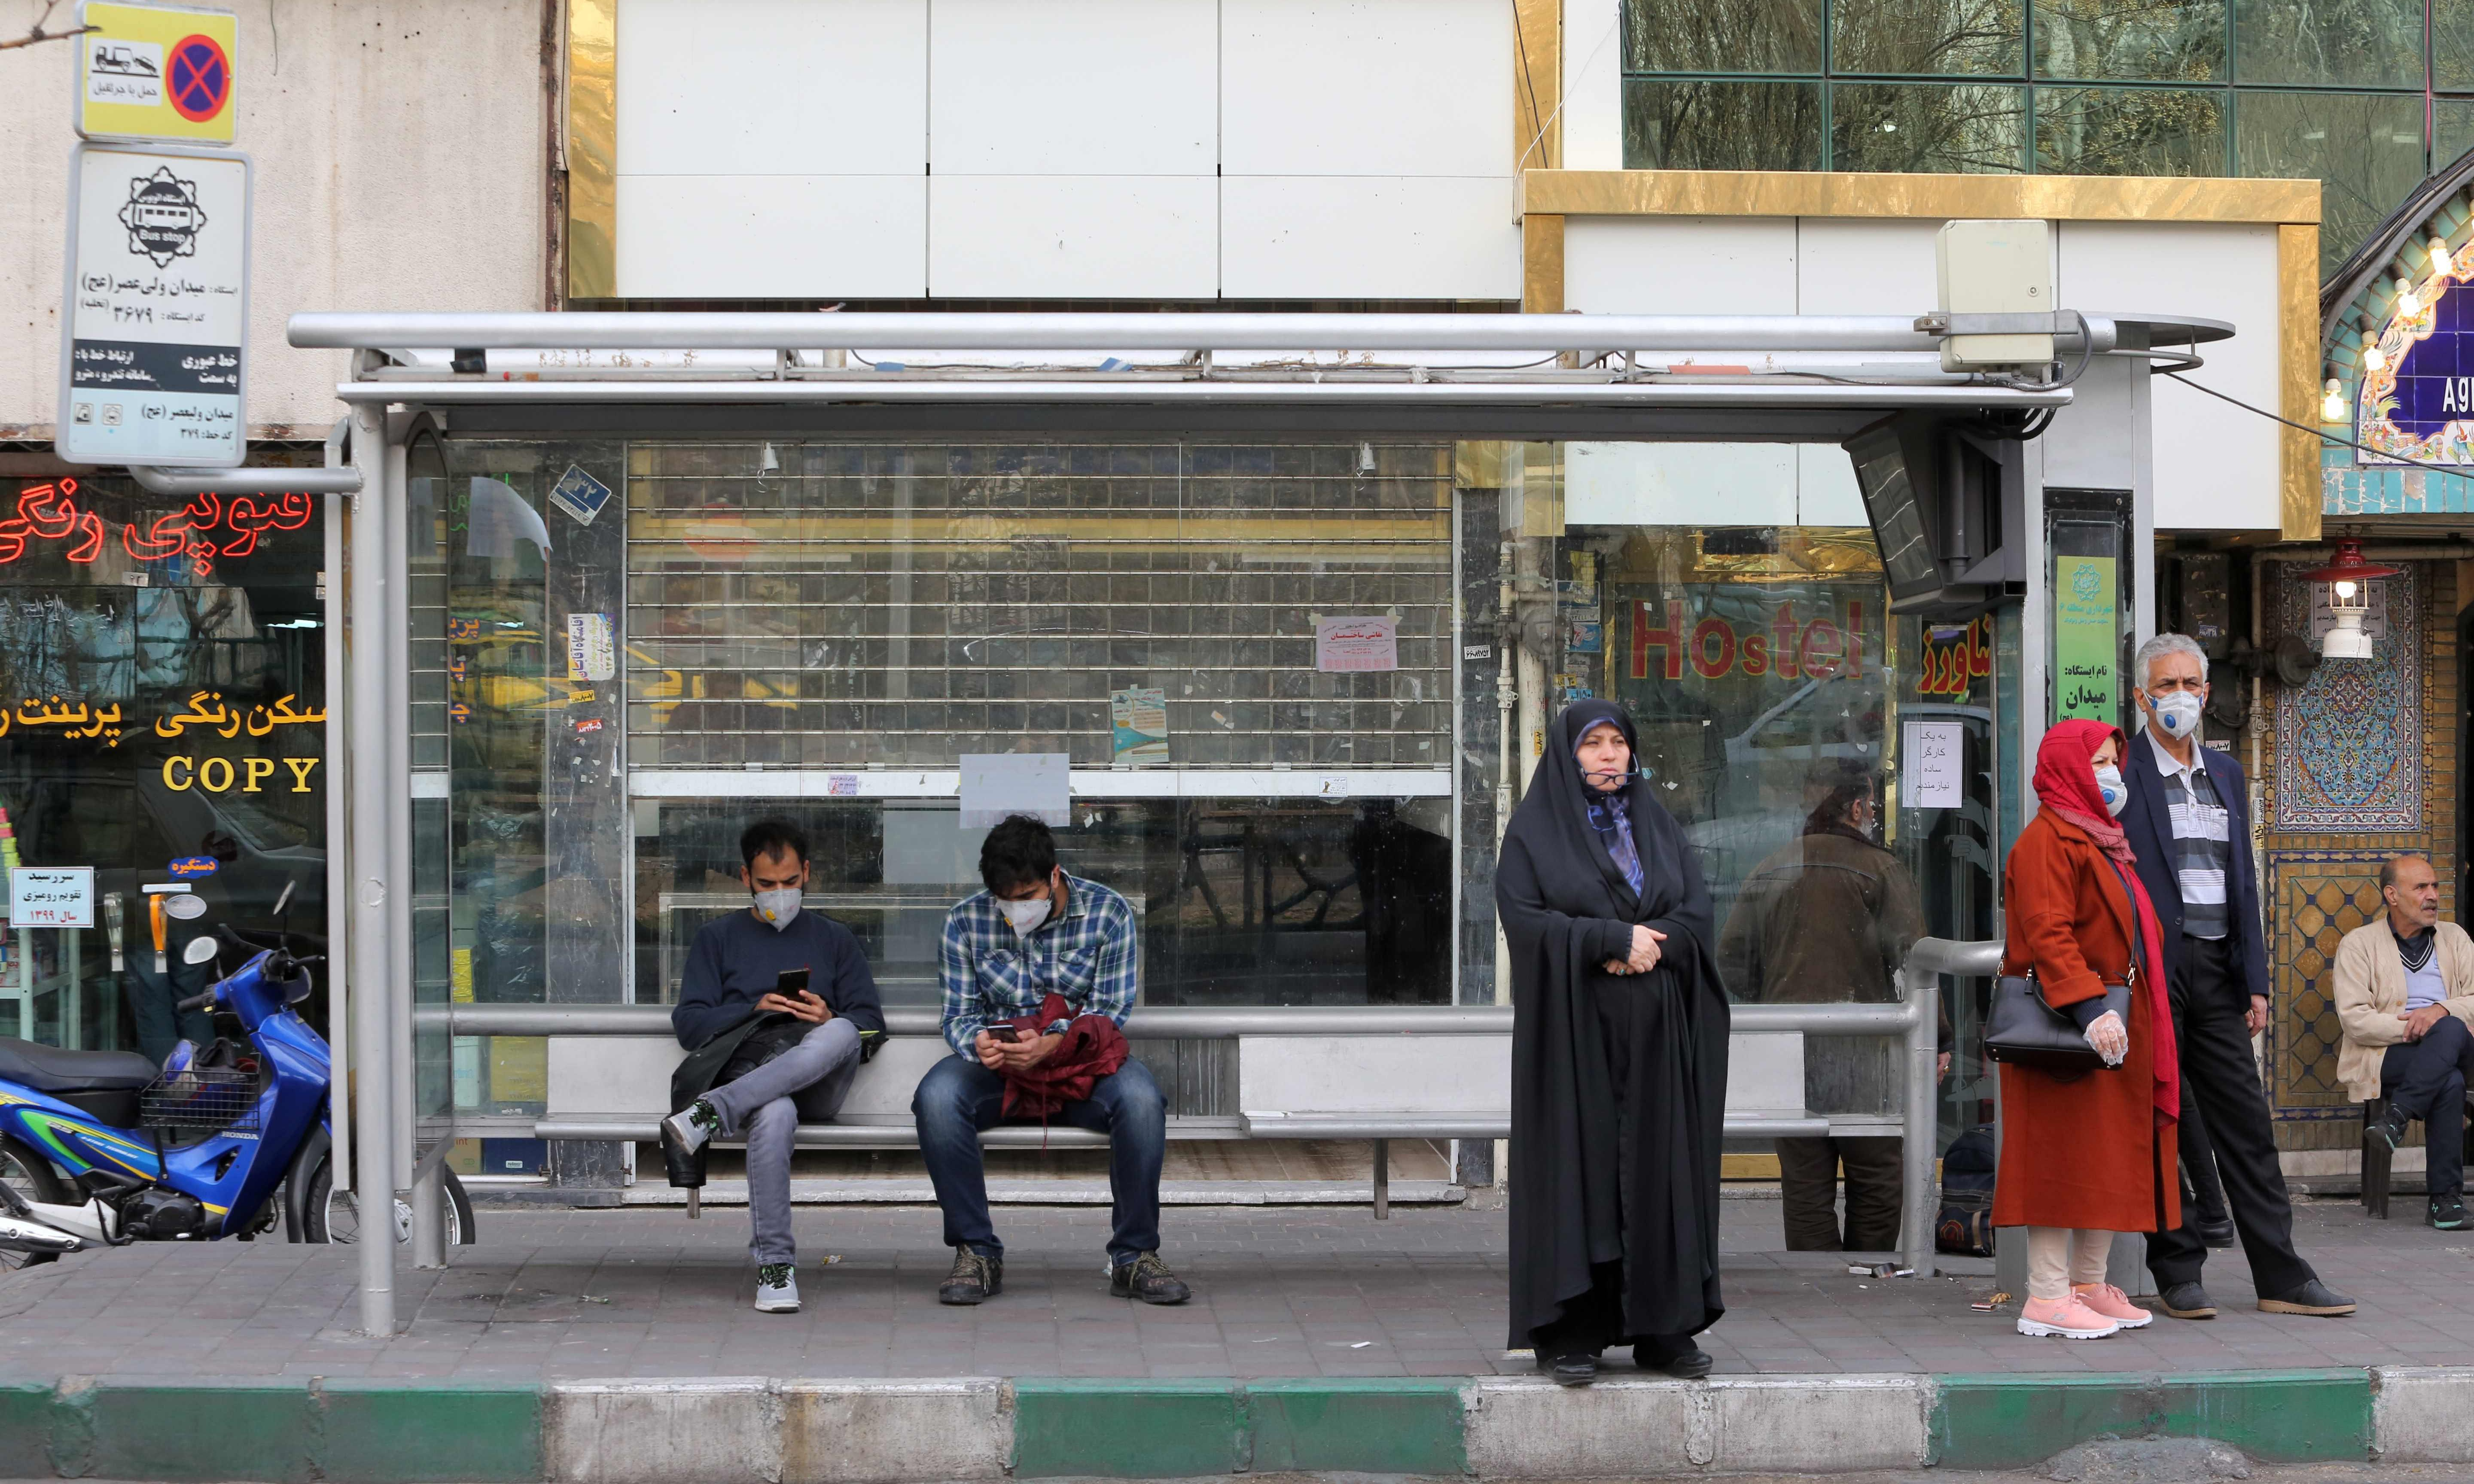 Coronavirus fears grip Middle East as Iran denies cover-up